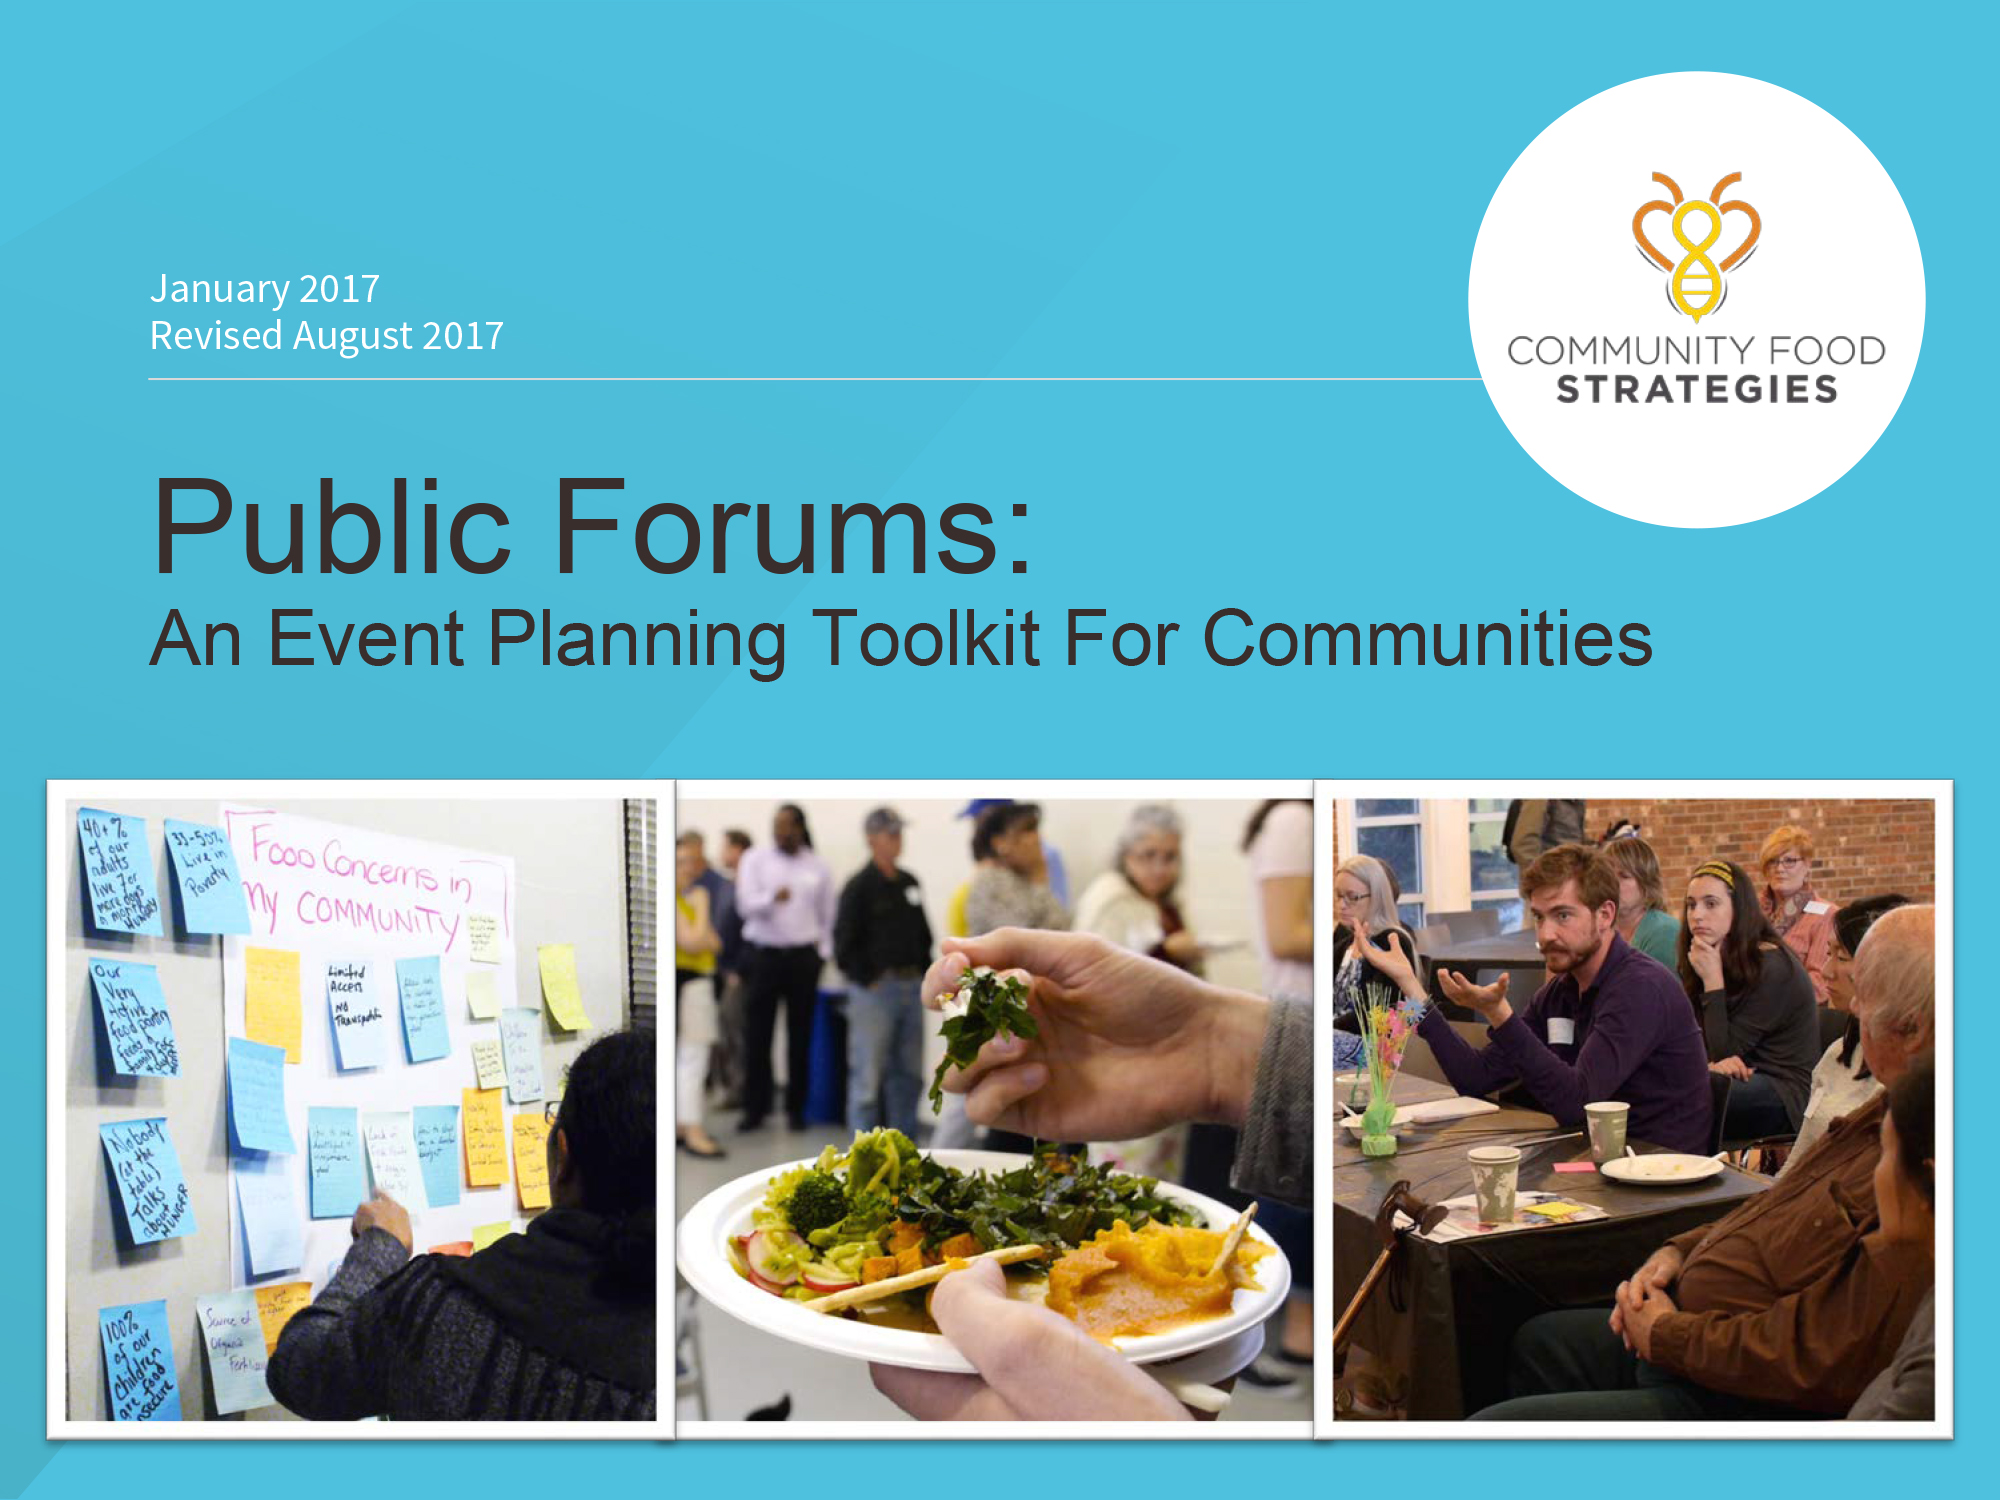 Download the newly revised Public Forum toolkit and worksheet to help plan your next community Forum.